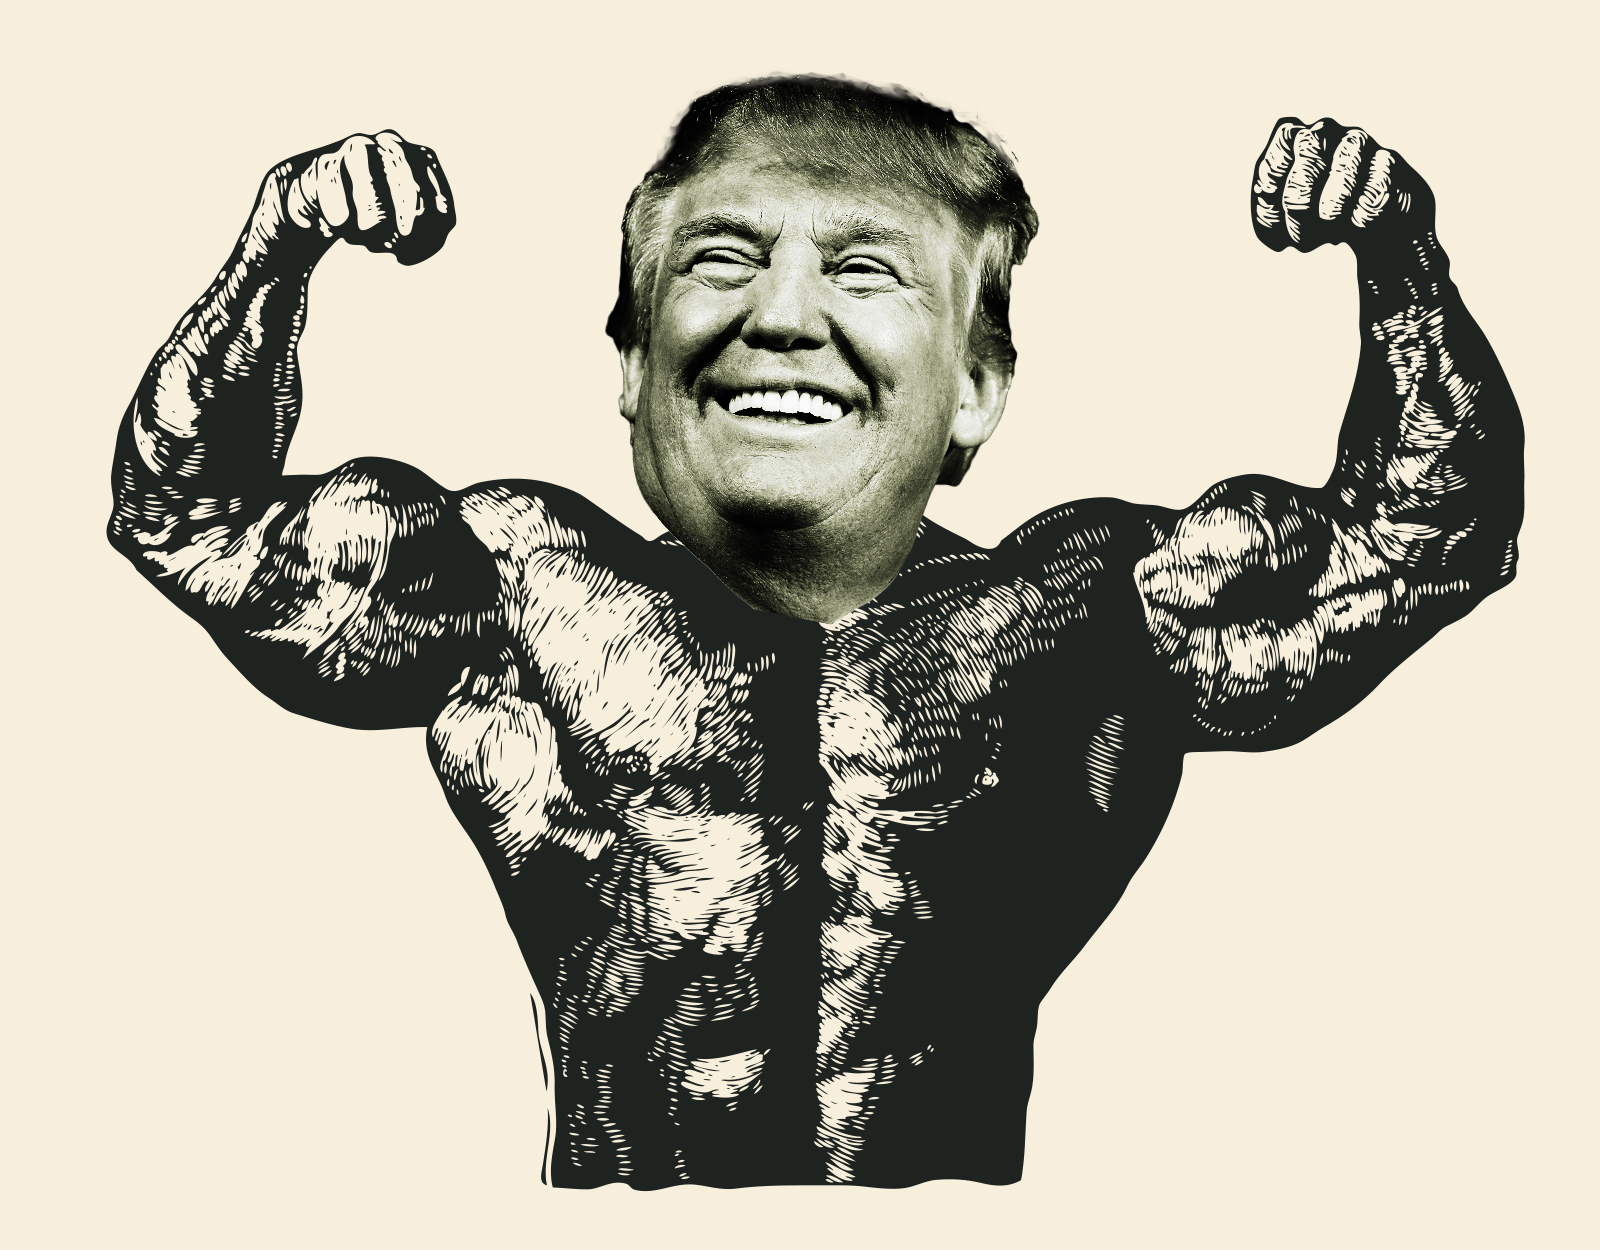 Is Donald Trump Manly? - The Bulwark